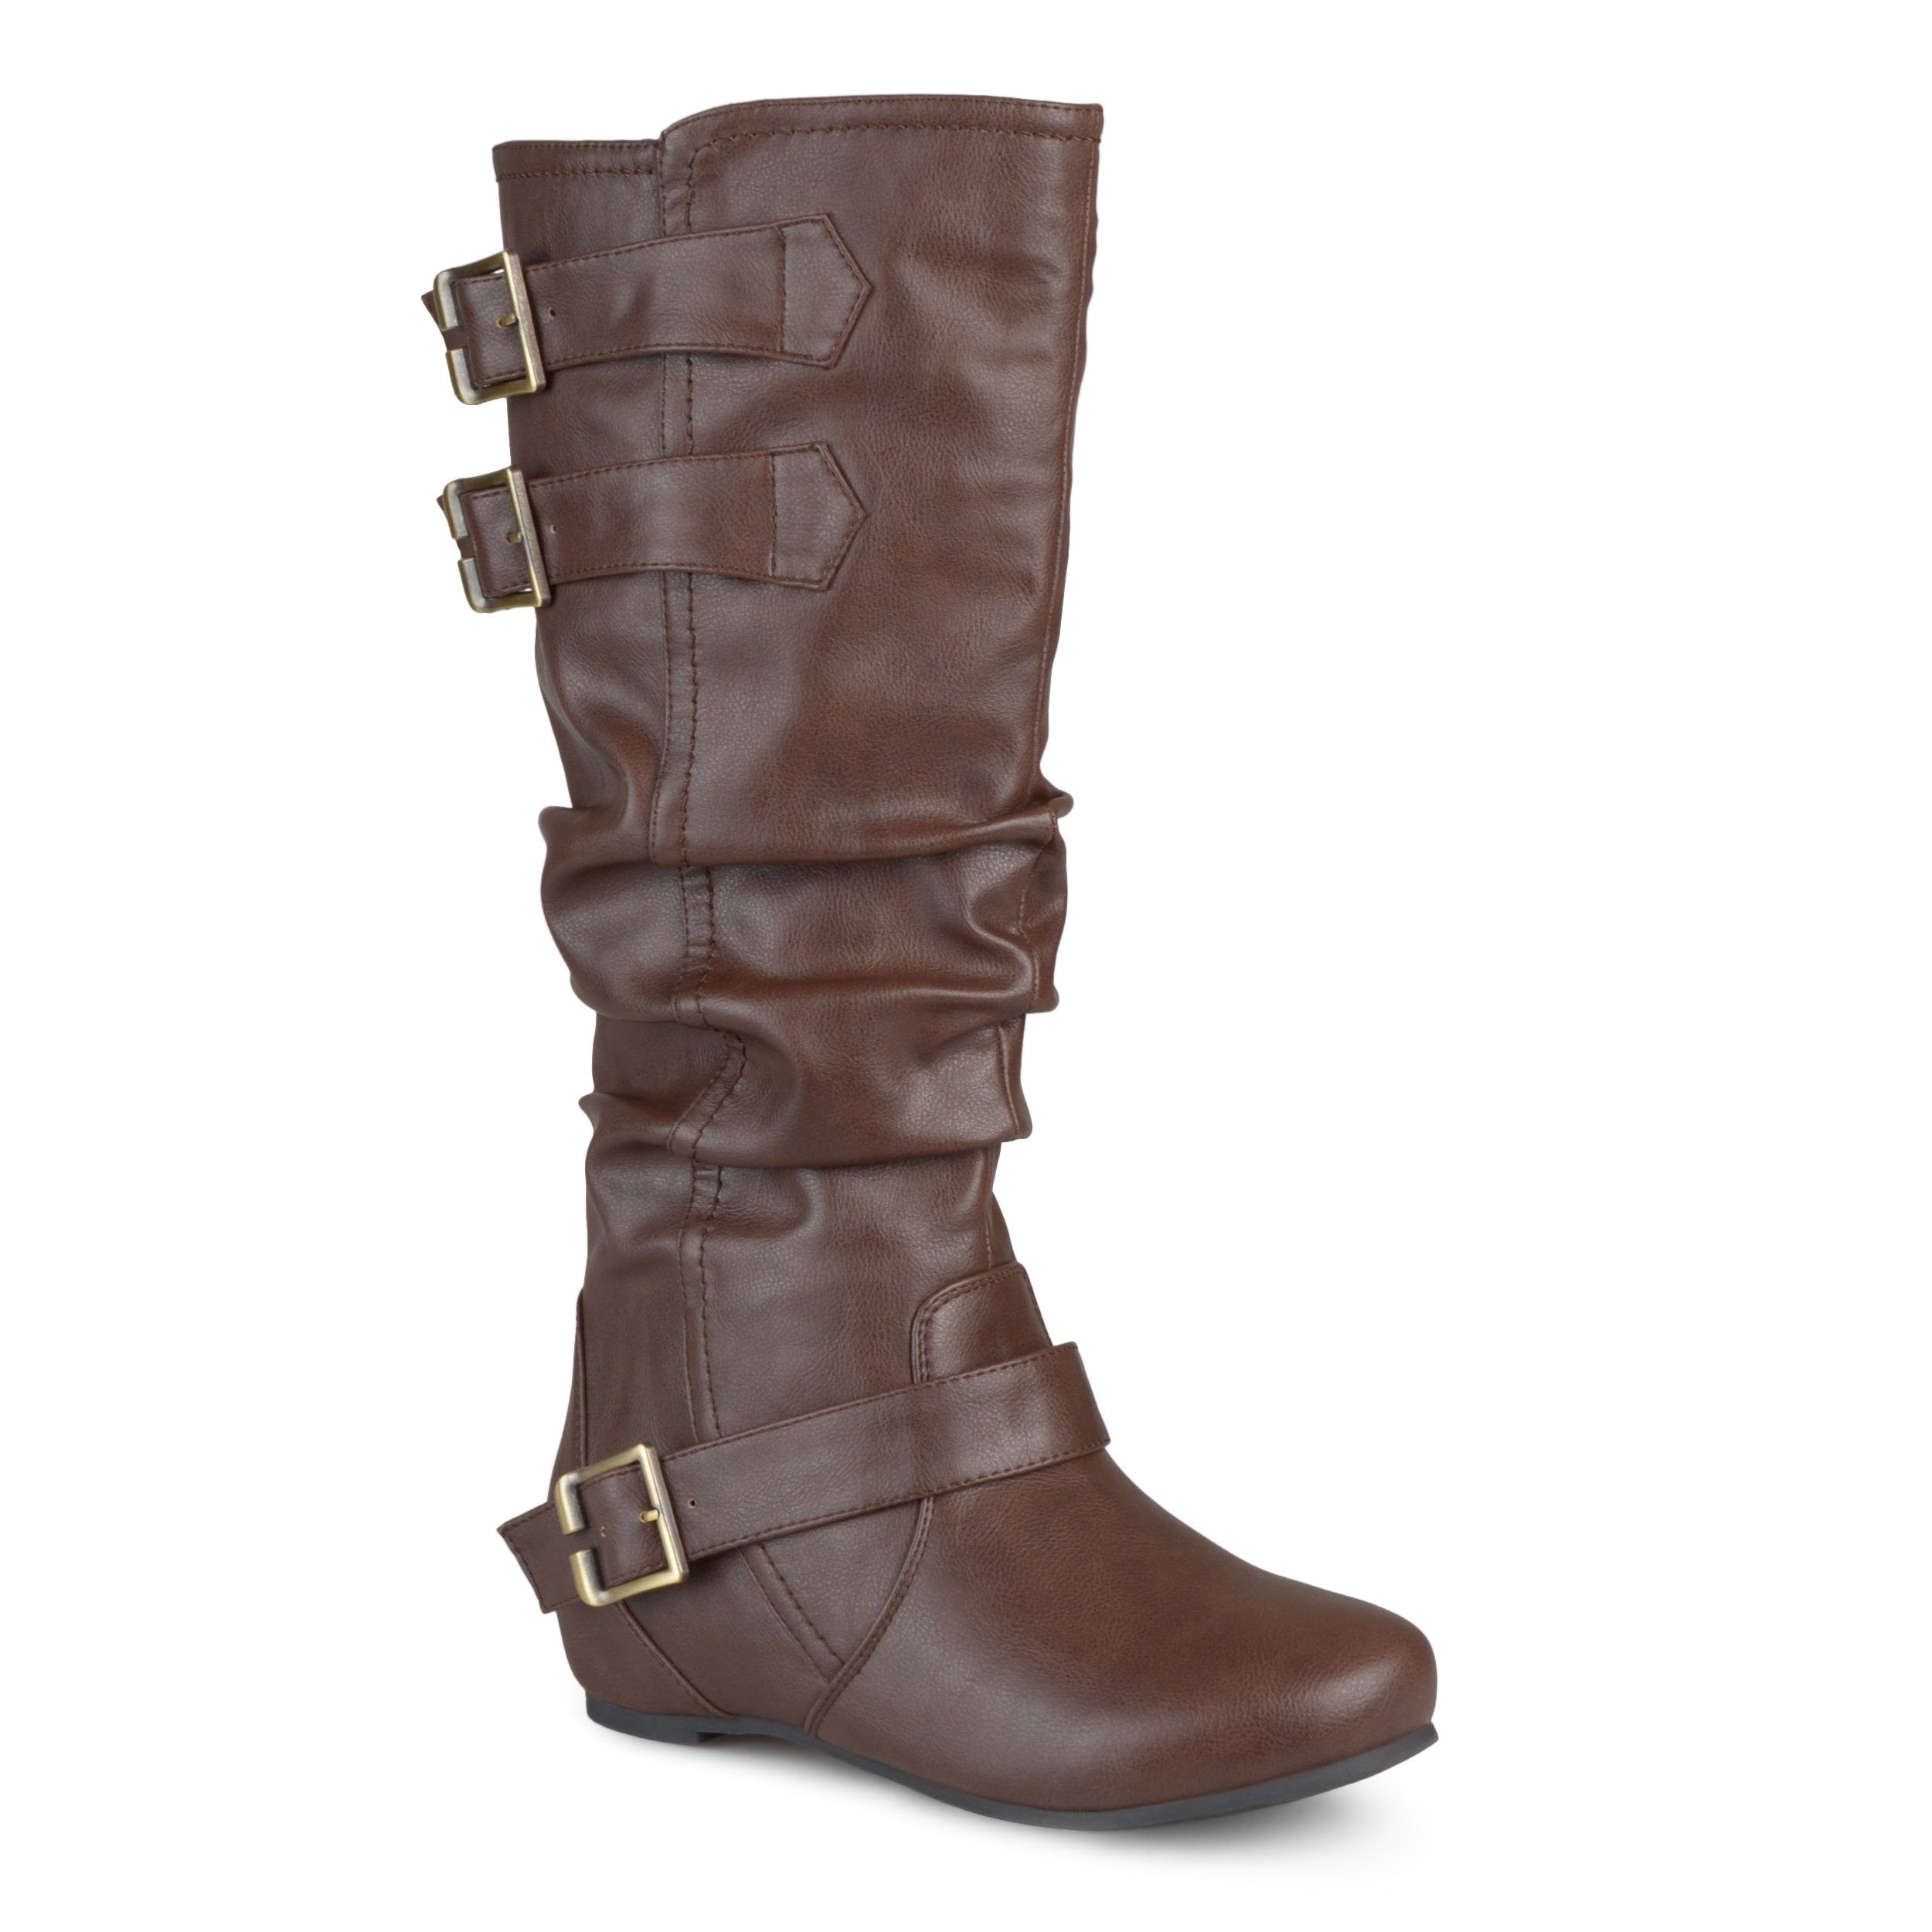 Journee Collection Womens Regular Sized, Wide-Calf and Extra Wide-Calf Buckle Slouch Low-Wedge Boots Brown, 9.5 Extra Wide Calf US